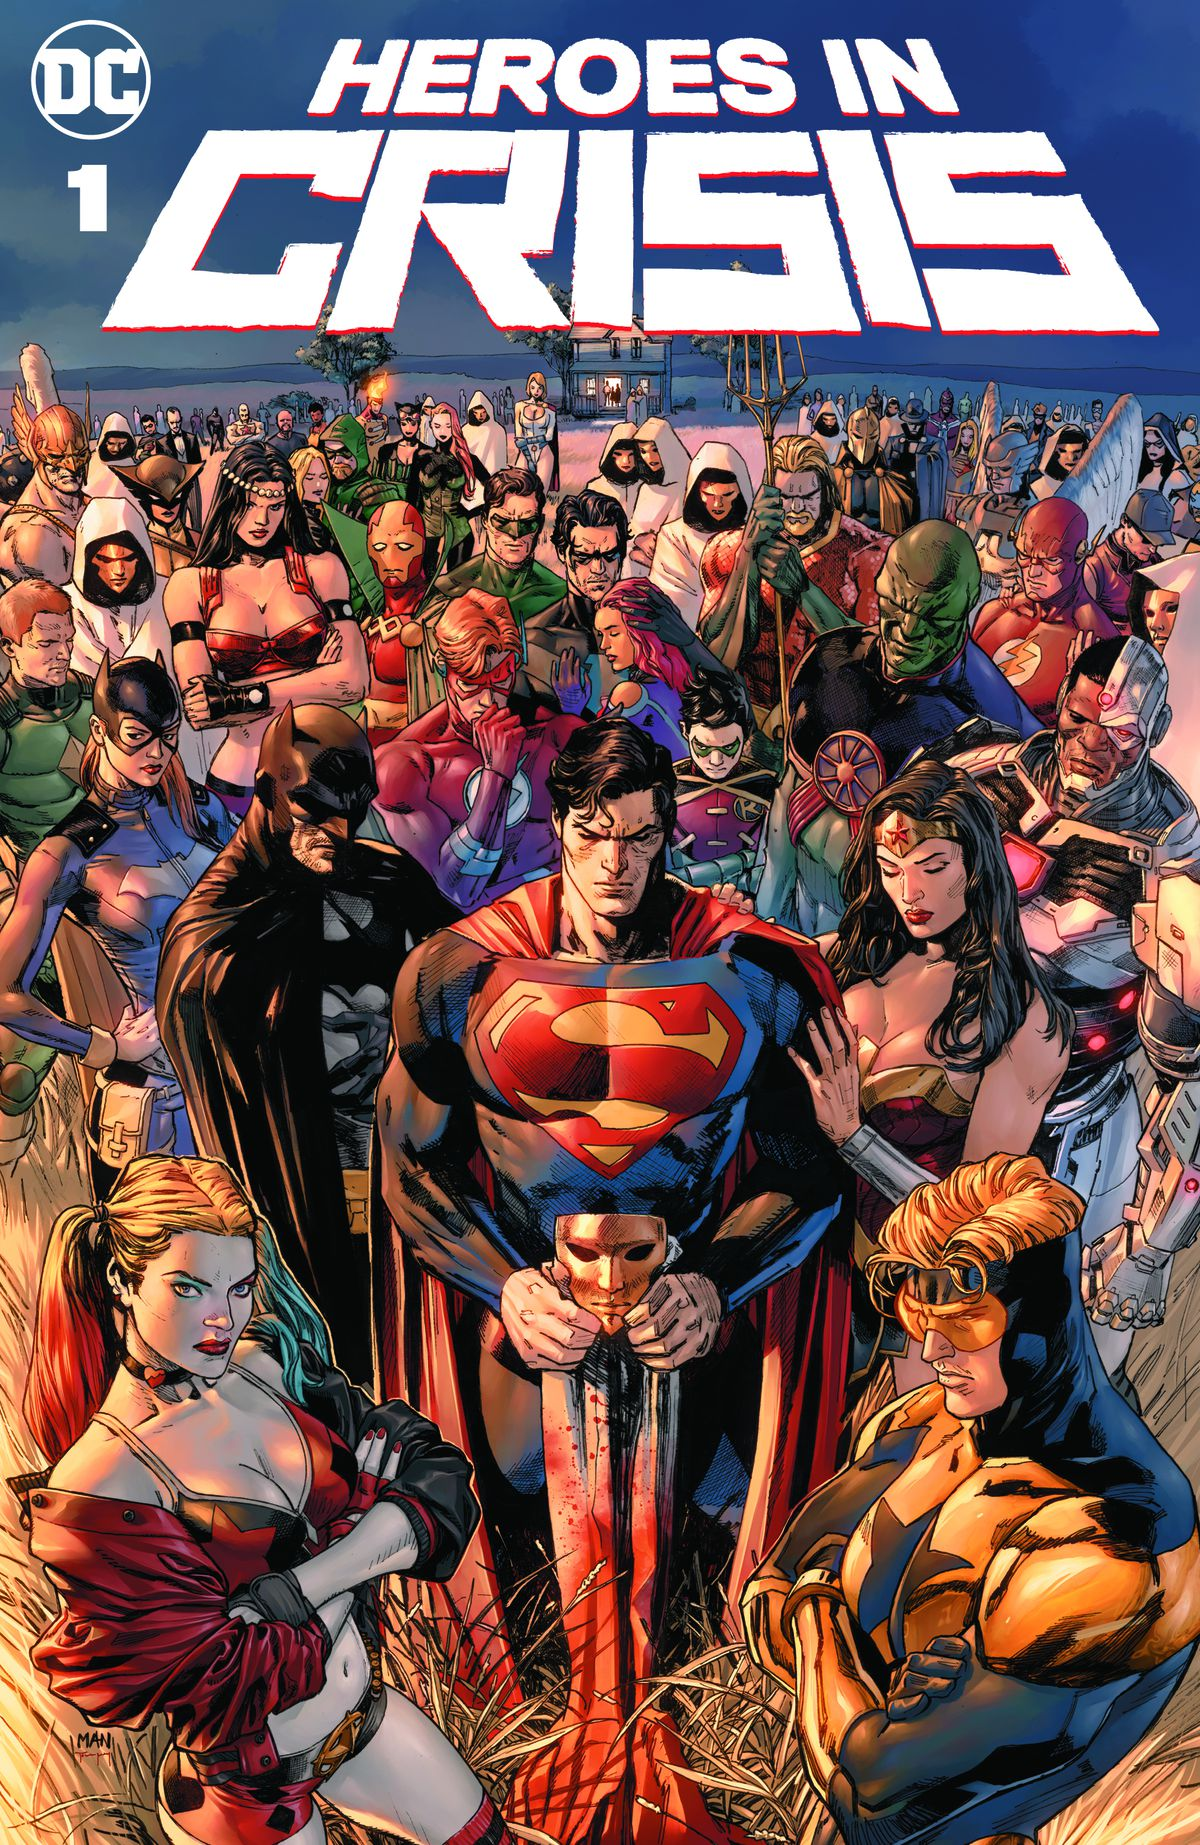 The cover of Heroes in Crisis #1, DC Comics (2018), with correct colors.